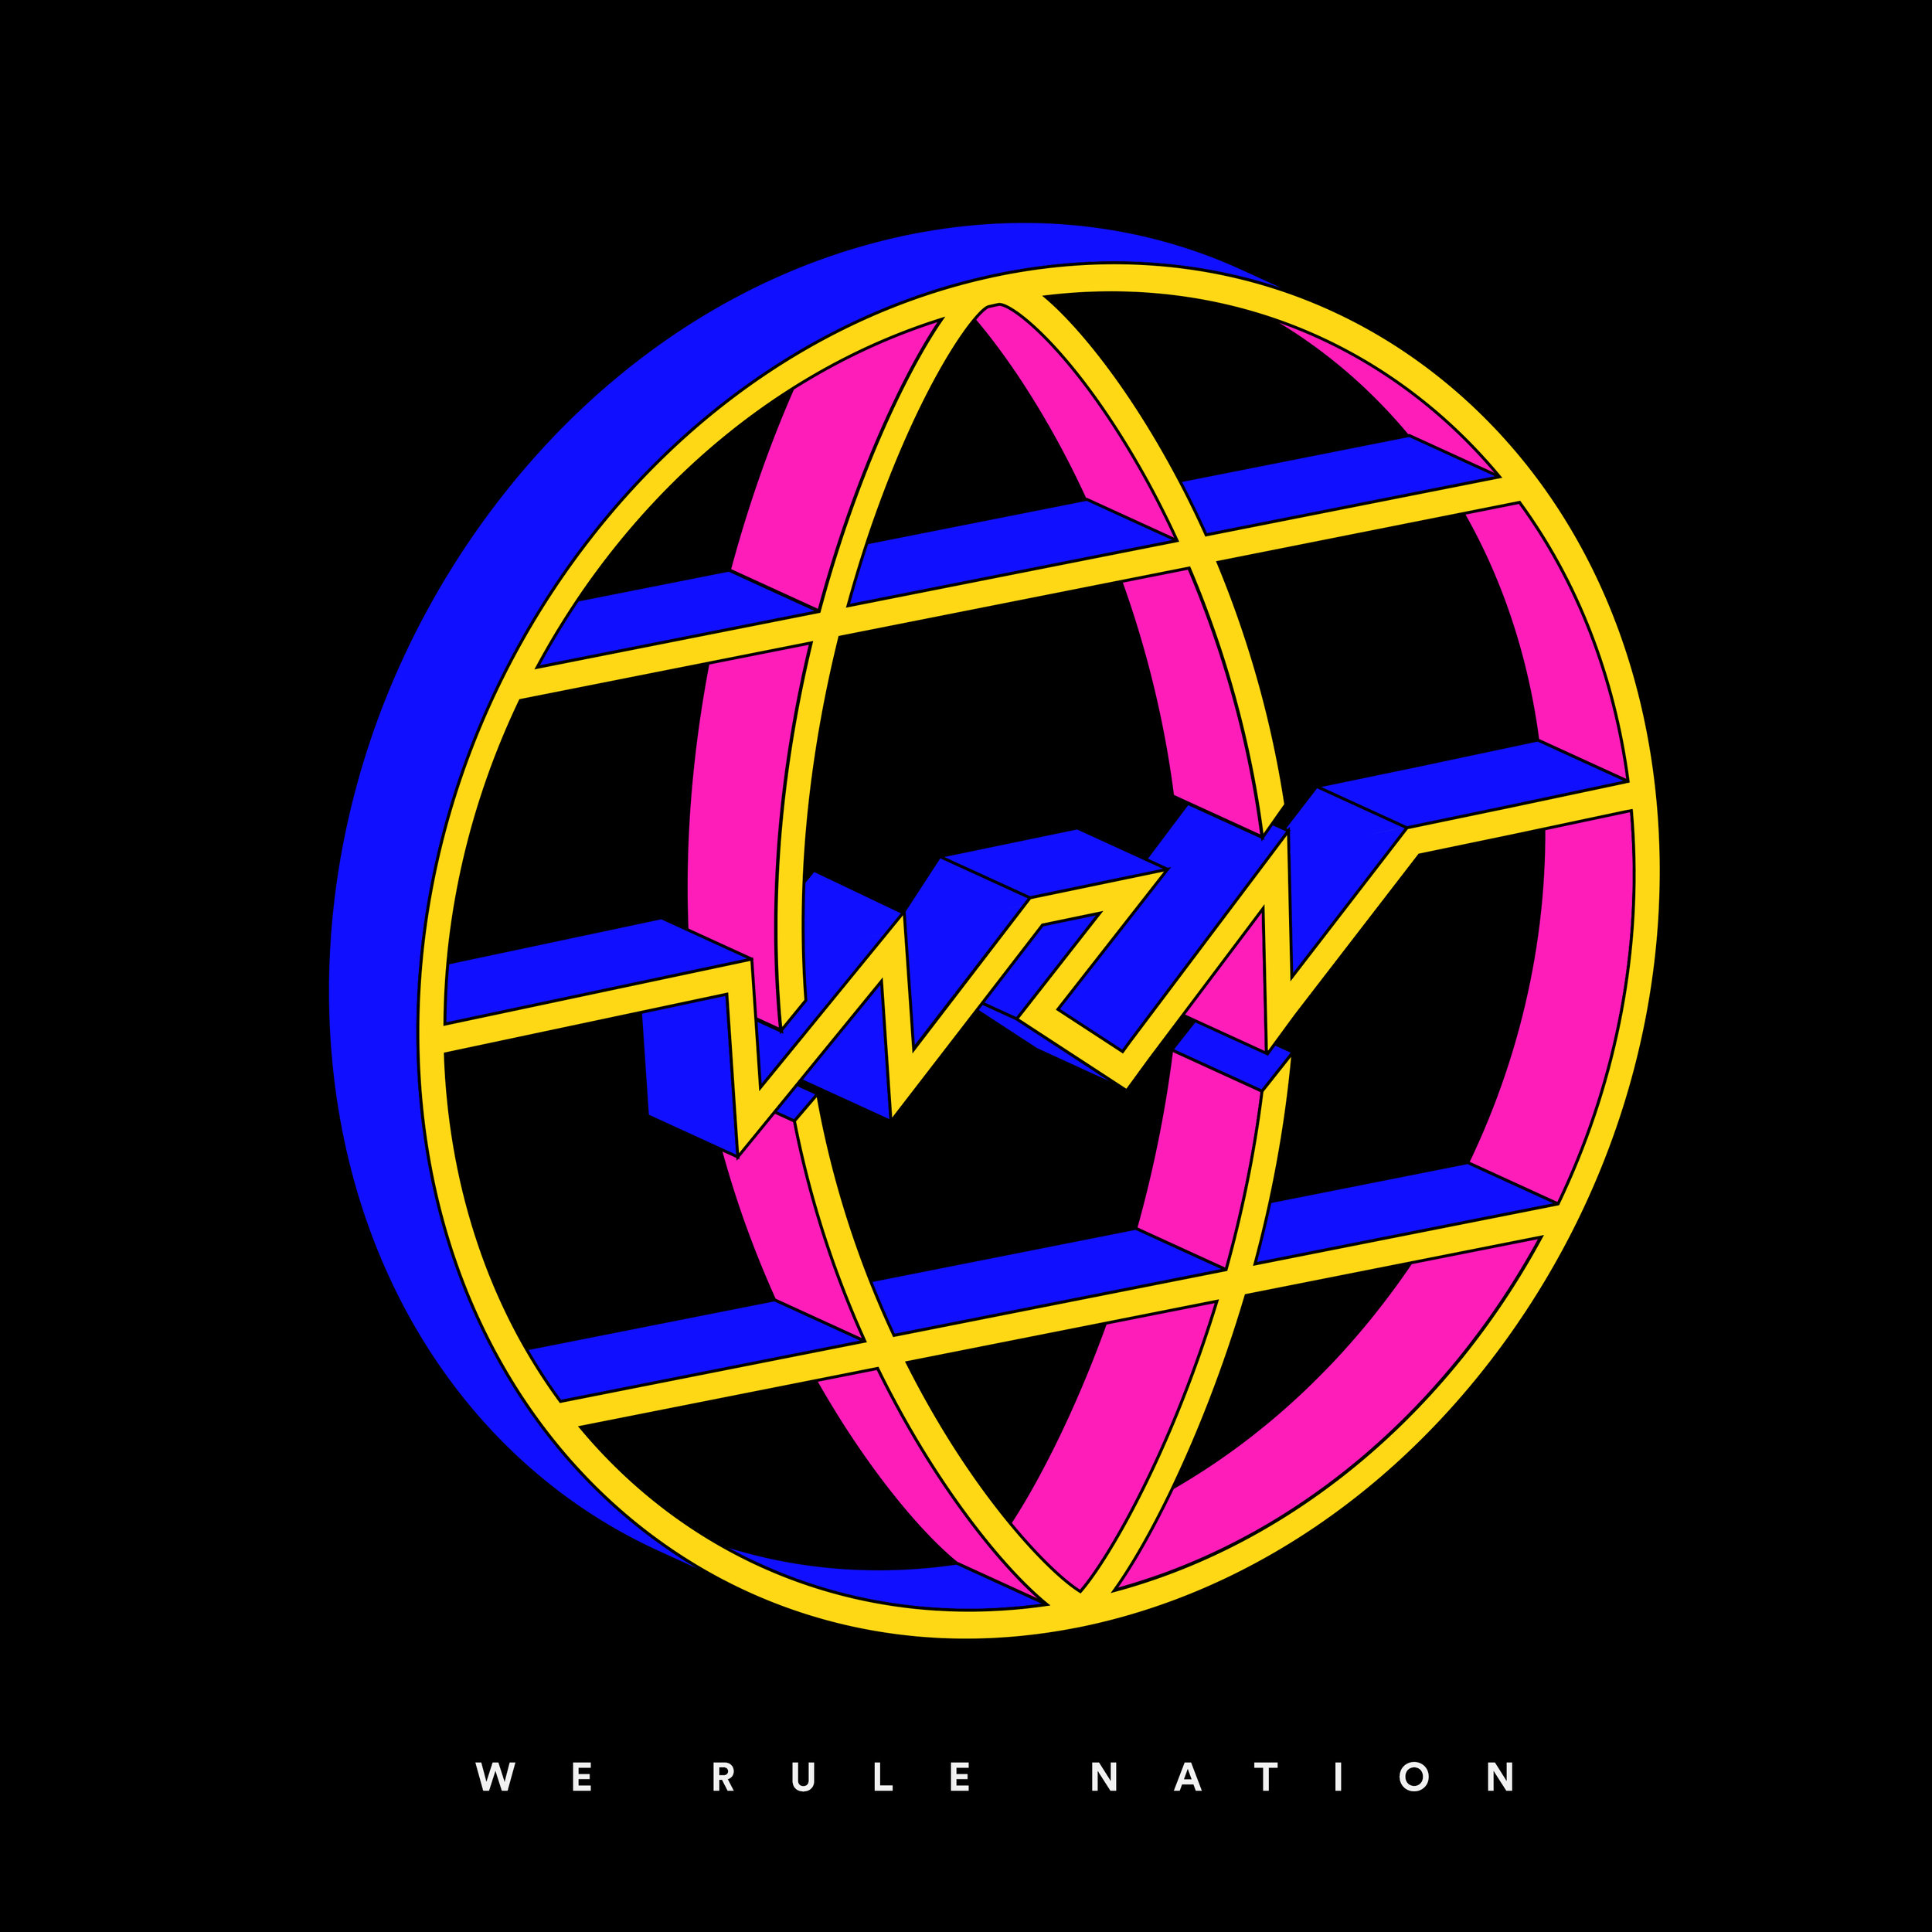 We Rule Nation - Victor Moatti (2016)